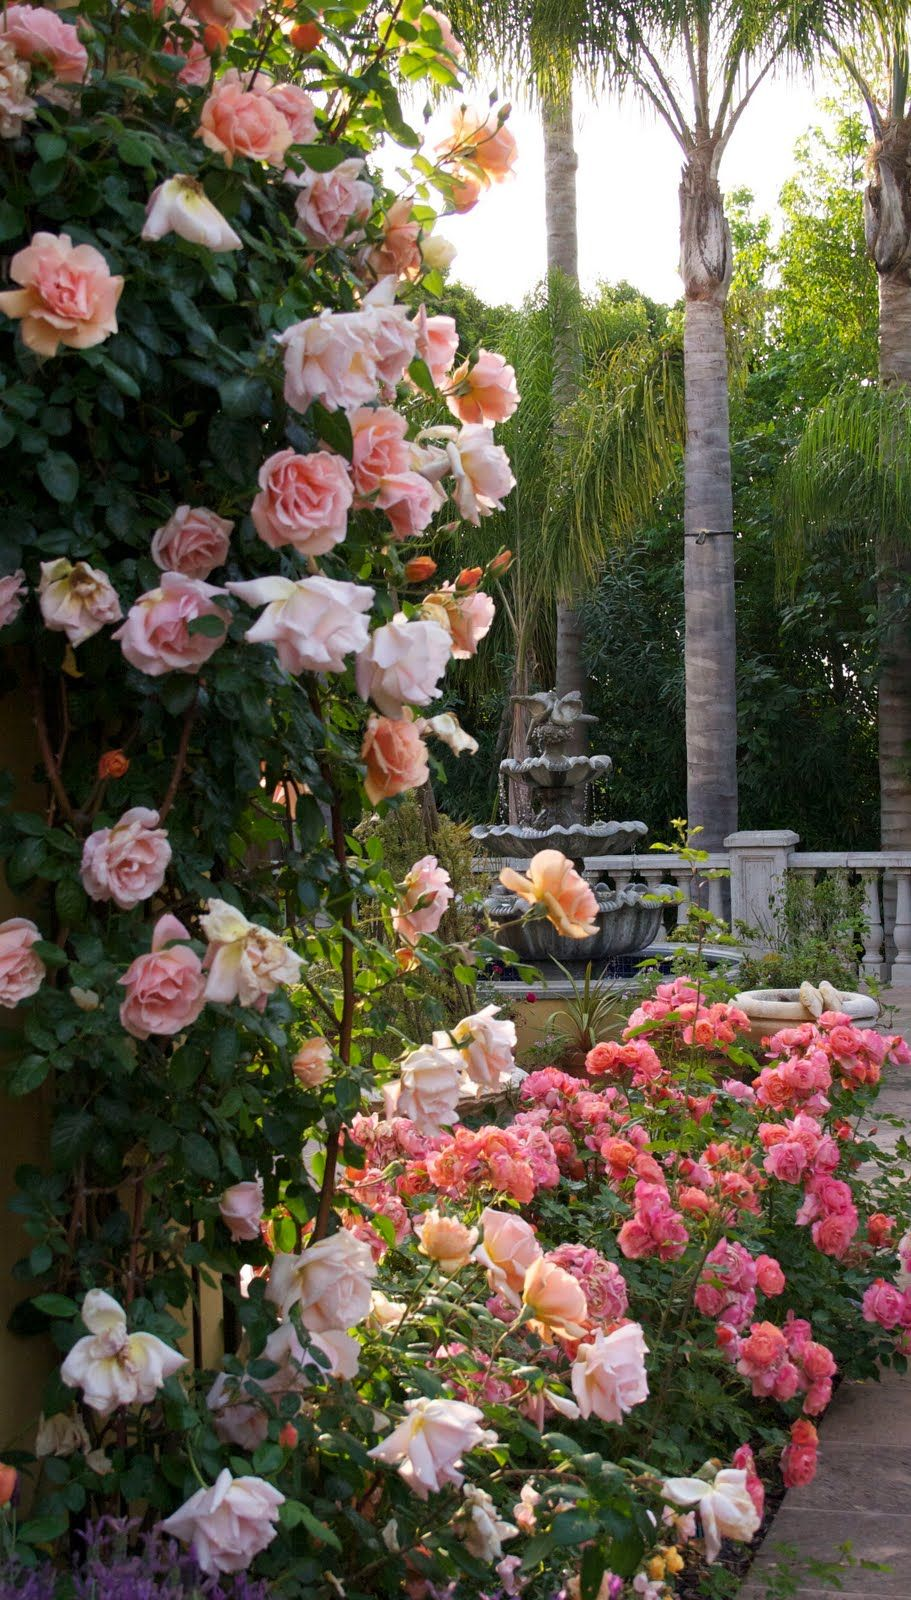 Even I Am In Awe Of This Exuberant Show Being Put On Today By The Roses The Climbing Rose Is Royal Sunset Rose Garden Design Beautiful Flowers Climbing Roses